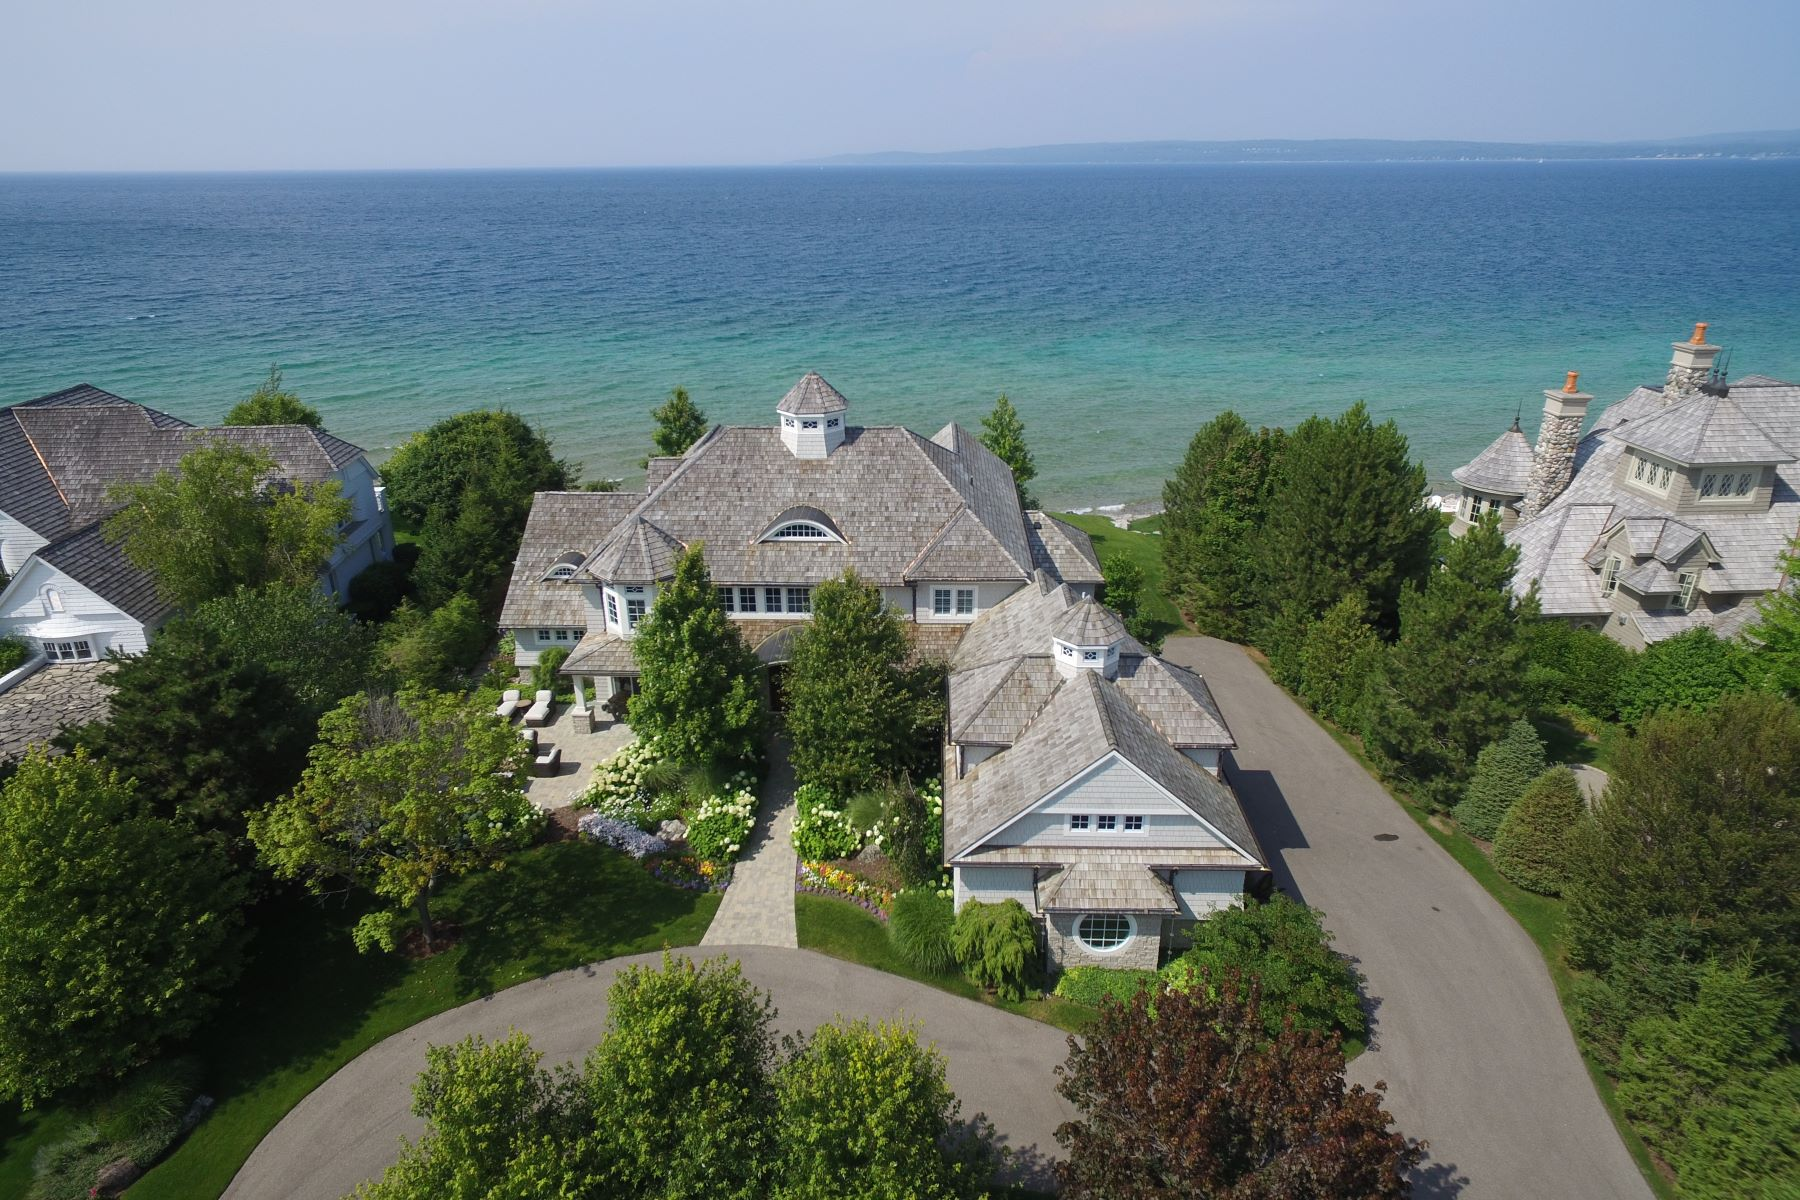 Single Family Homes for Sale at Peninsula 20 3970 Peninsula Drive Bay Harbor, Michigan 49770 United States